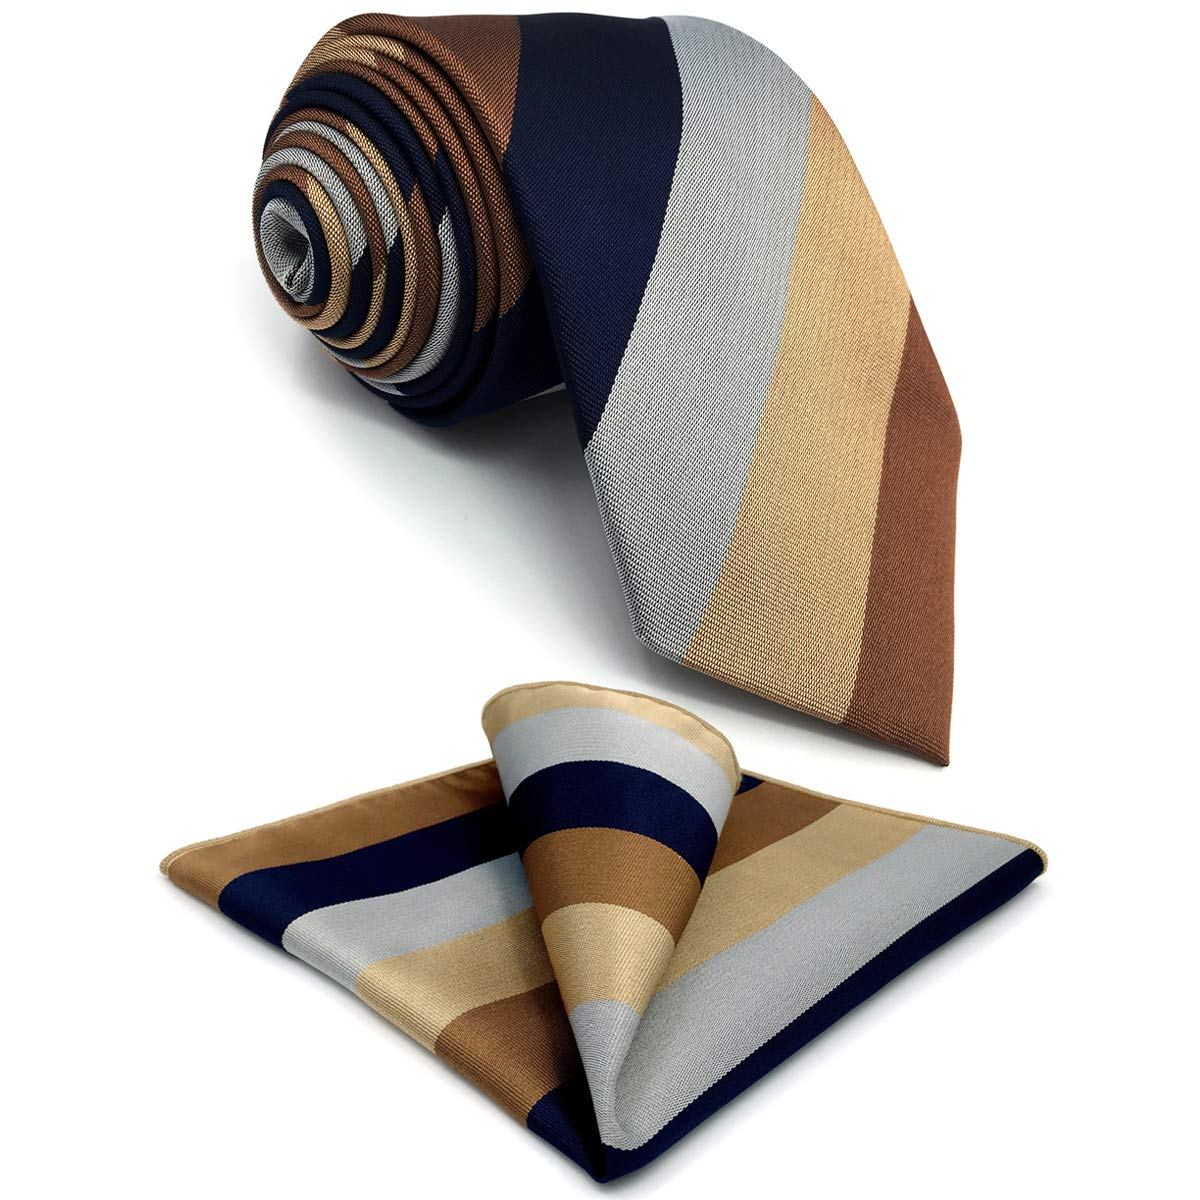 S&W SHLAX&WING New Ties for Men Striped Blue Brown Necktie for Suit Jacket Business